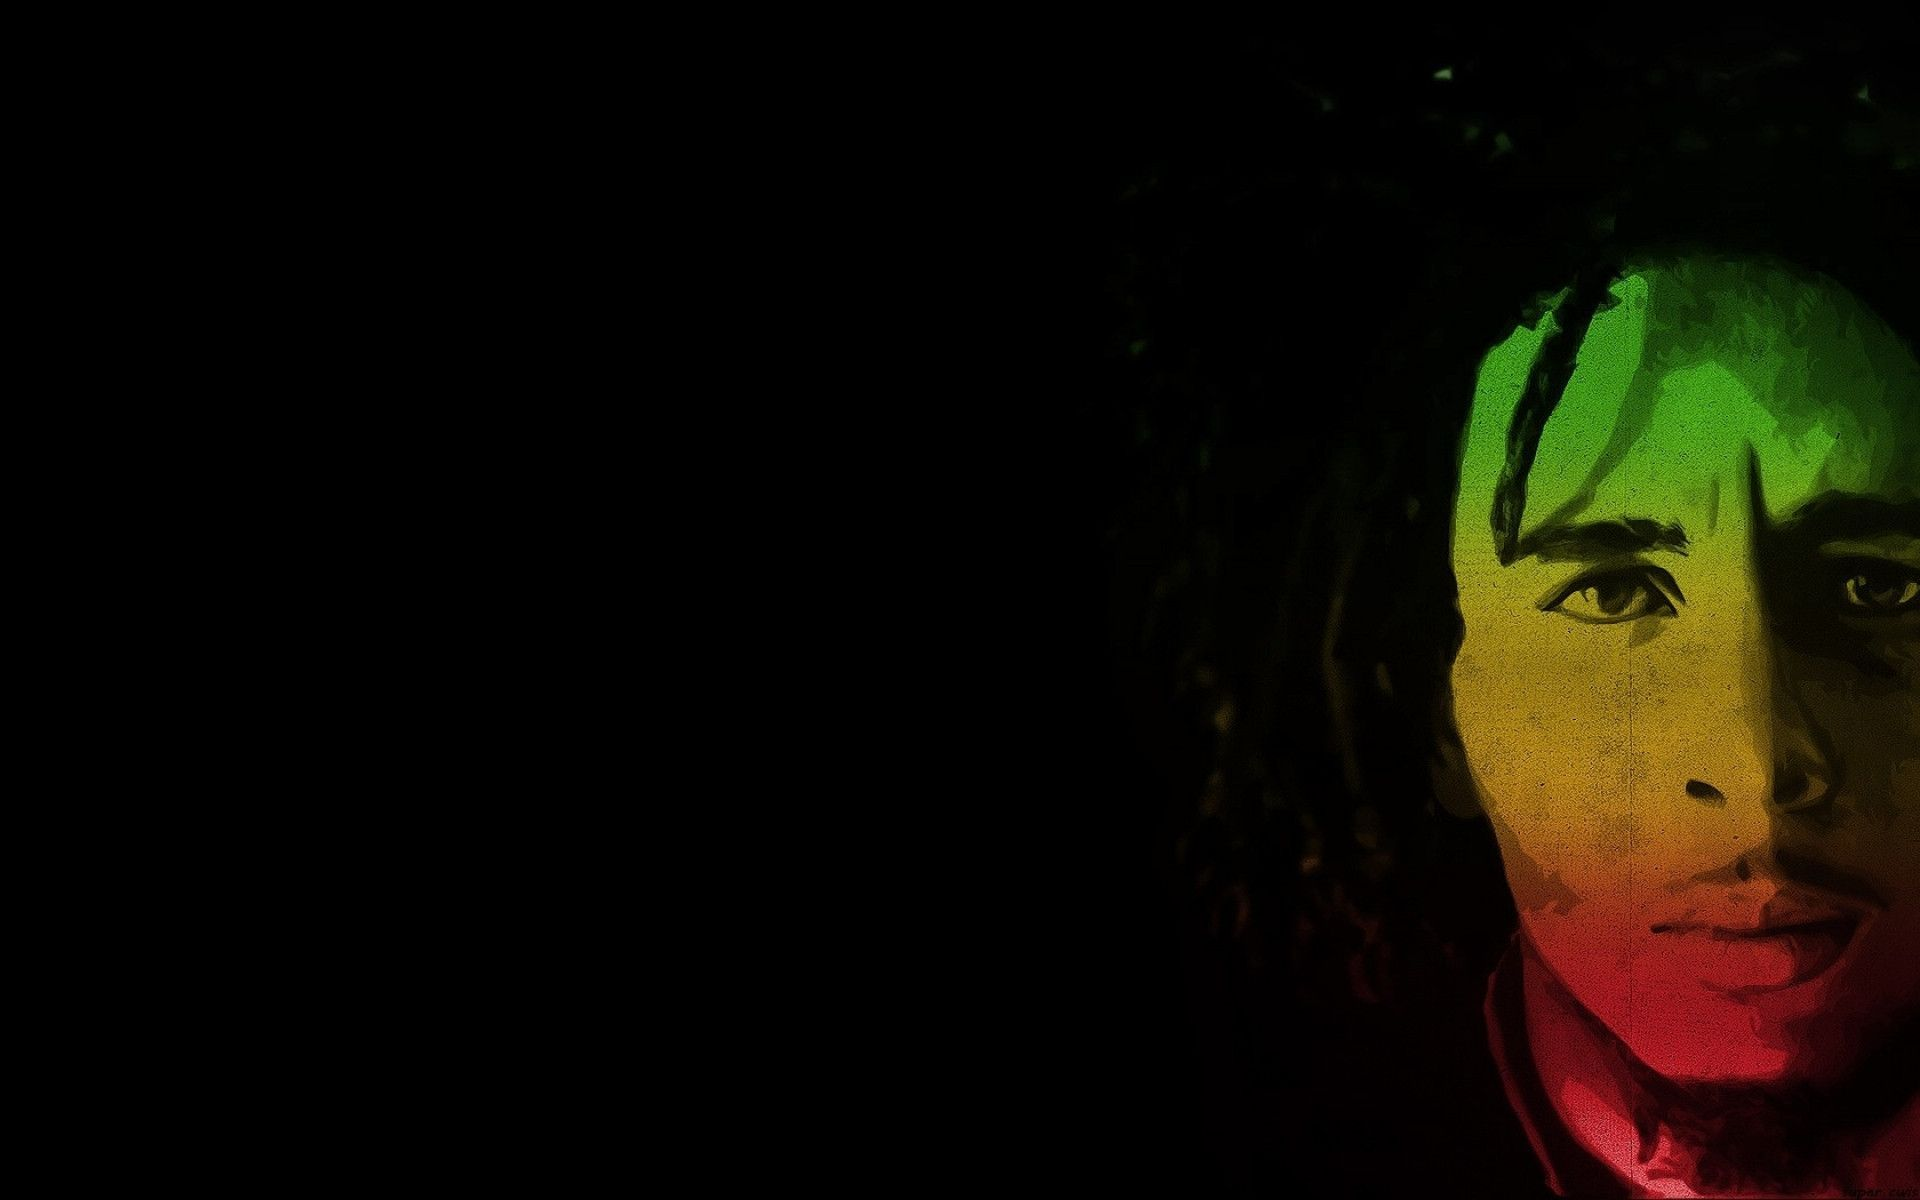 Wallpaper iphone rasta - Best Rasta Wallpaper For Android Free Download On Mobomarket